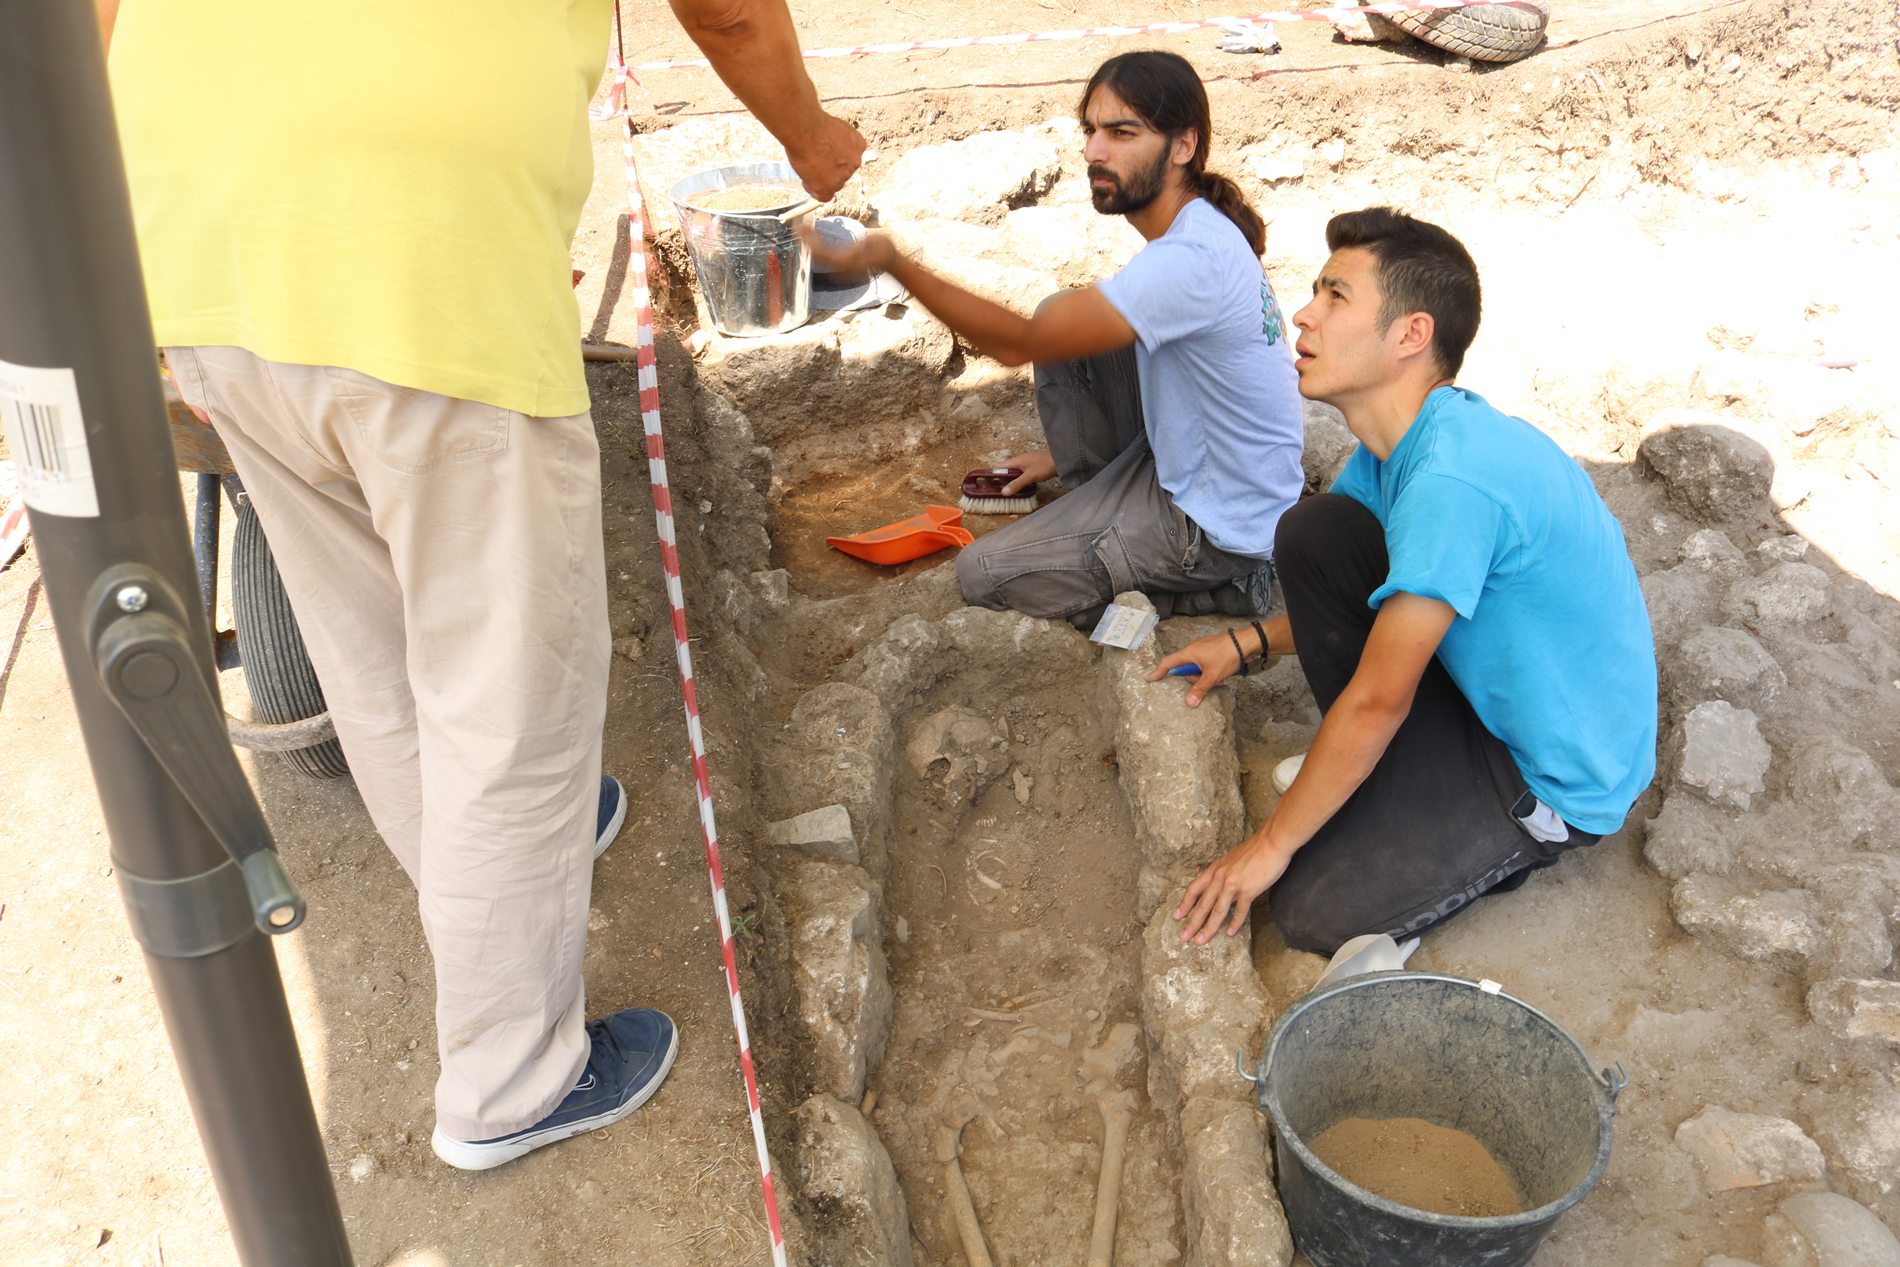 Archaeologists work on uncovering christian graves from the 4th century AD in Mieza